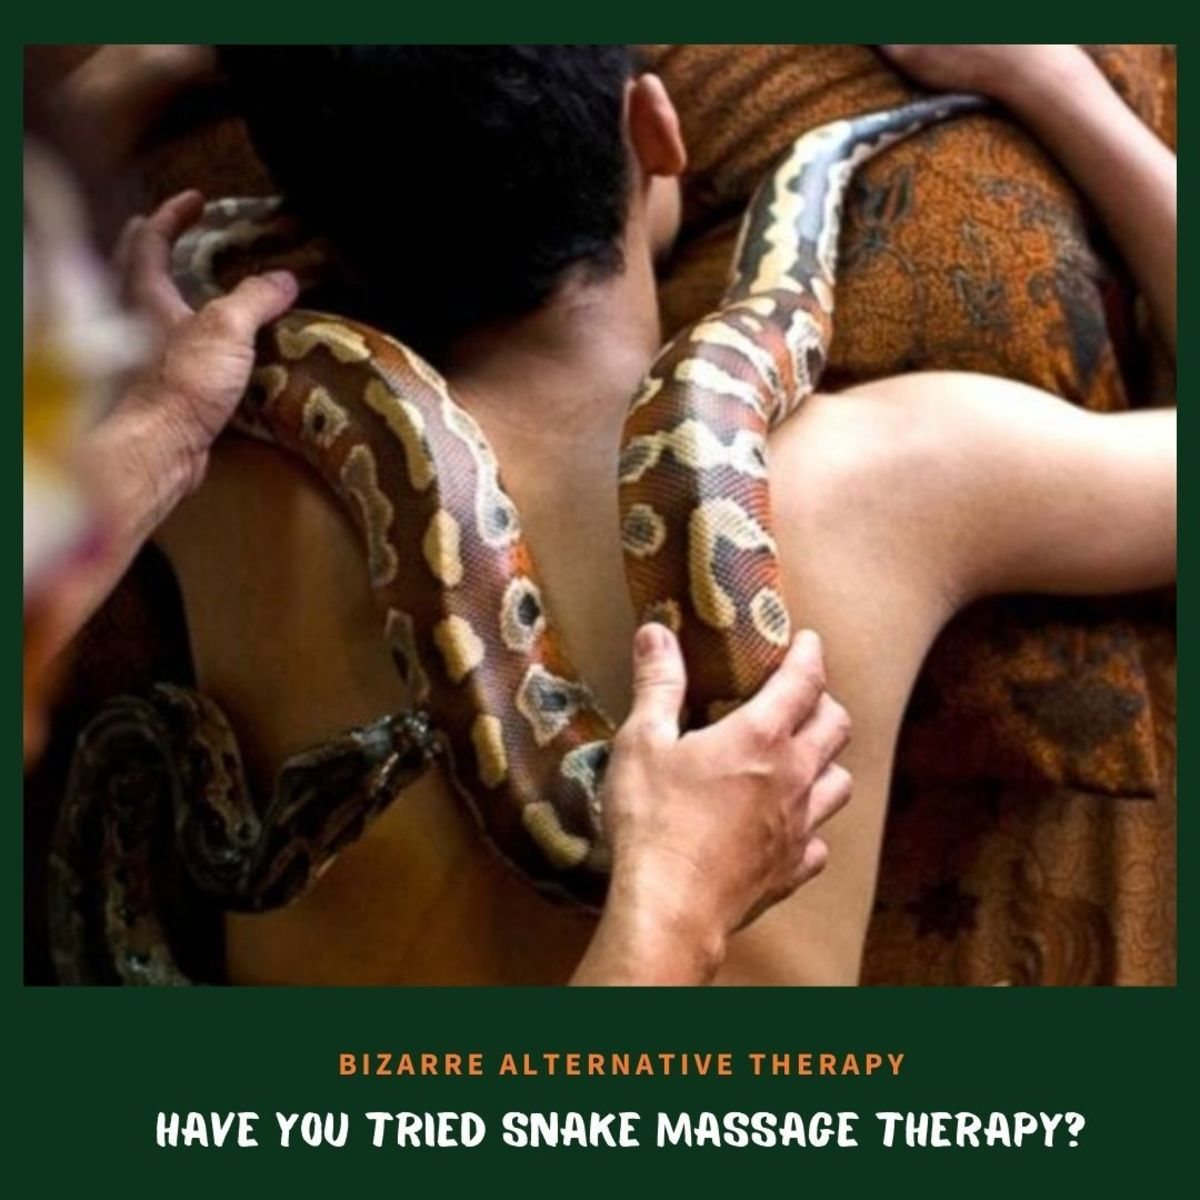 Snake massage therapy claimed to be an alternative treatment for depression.